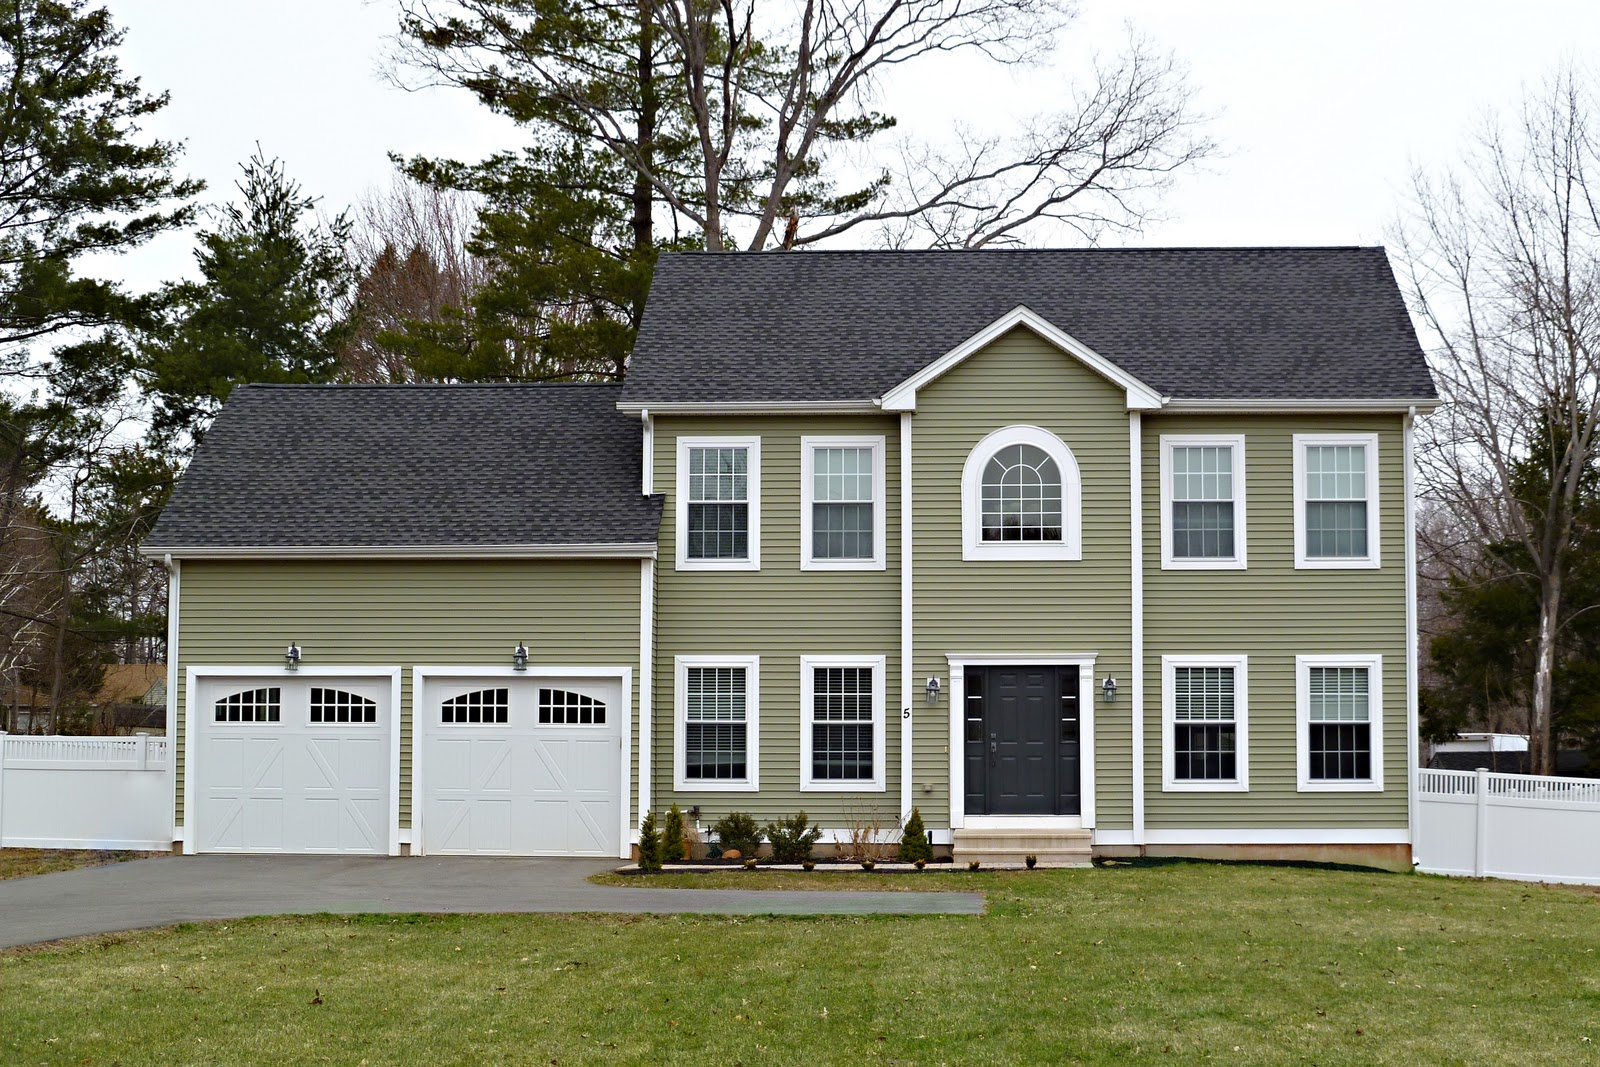 Chloe real estate coming soon beautiful cromwell colonial Beautiful real estate pictures